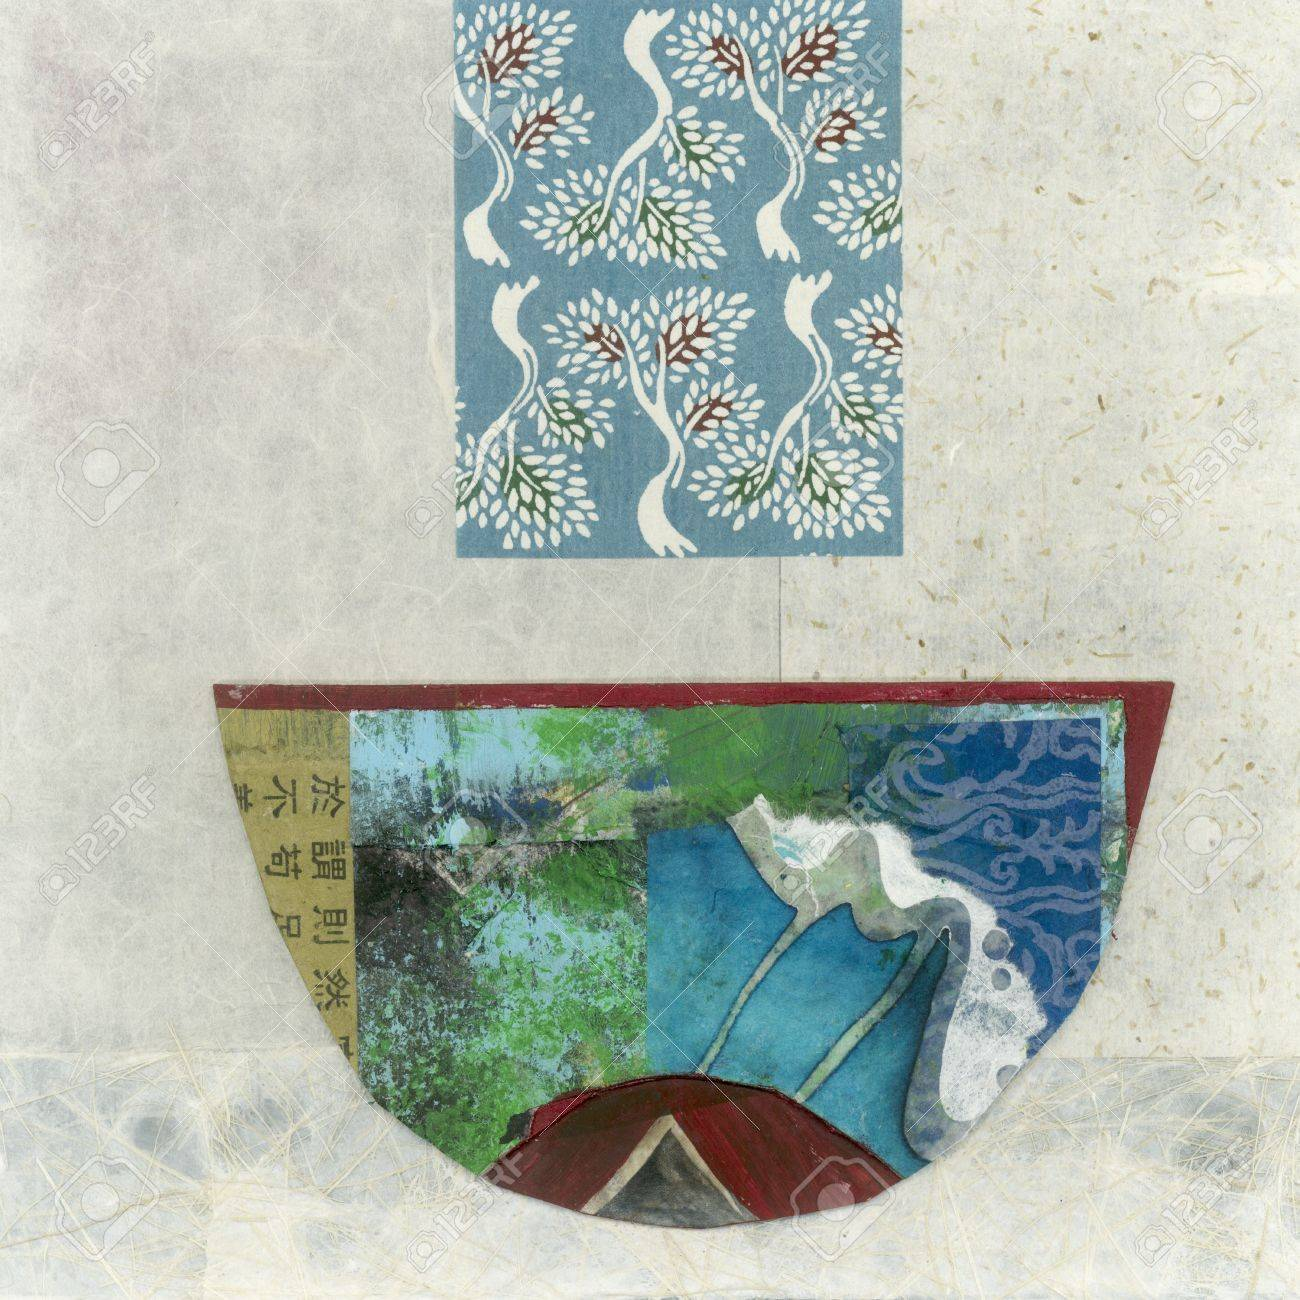 Abstract asian paper collage of a bowl. - 15512650